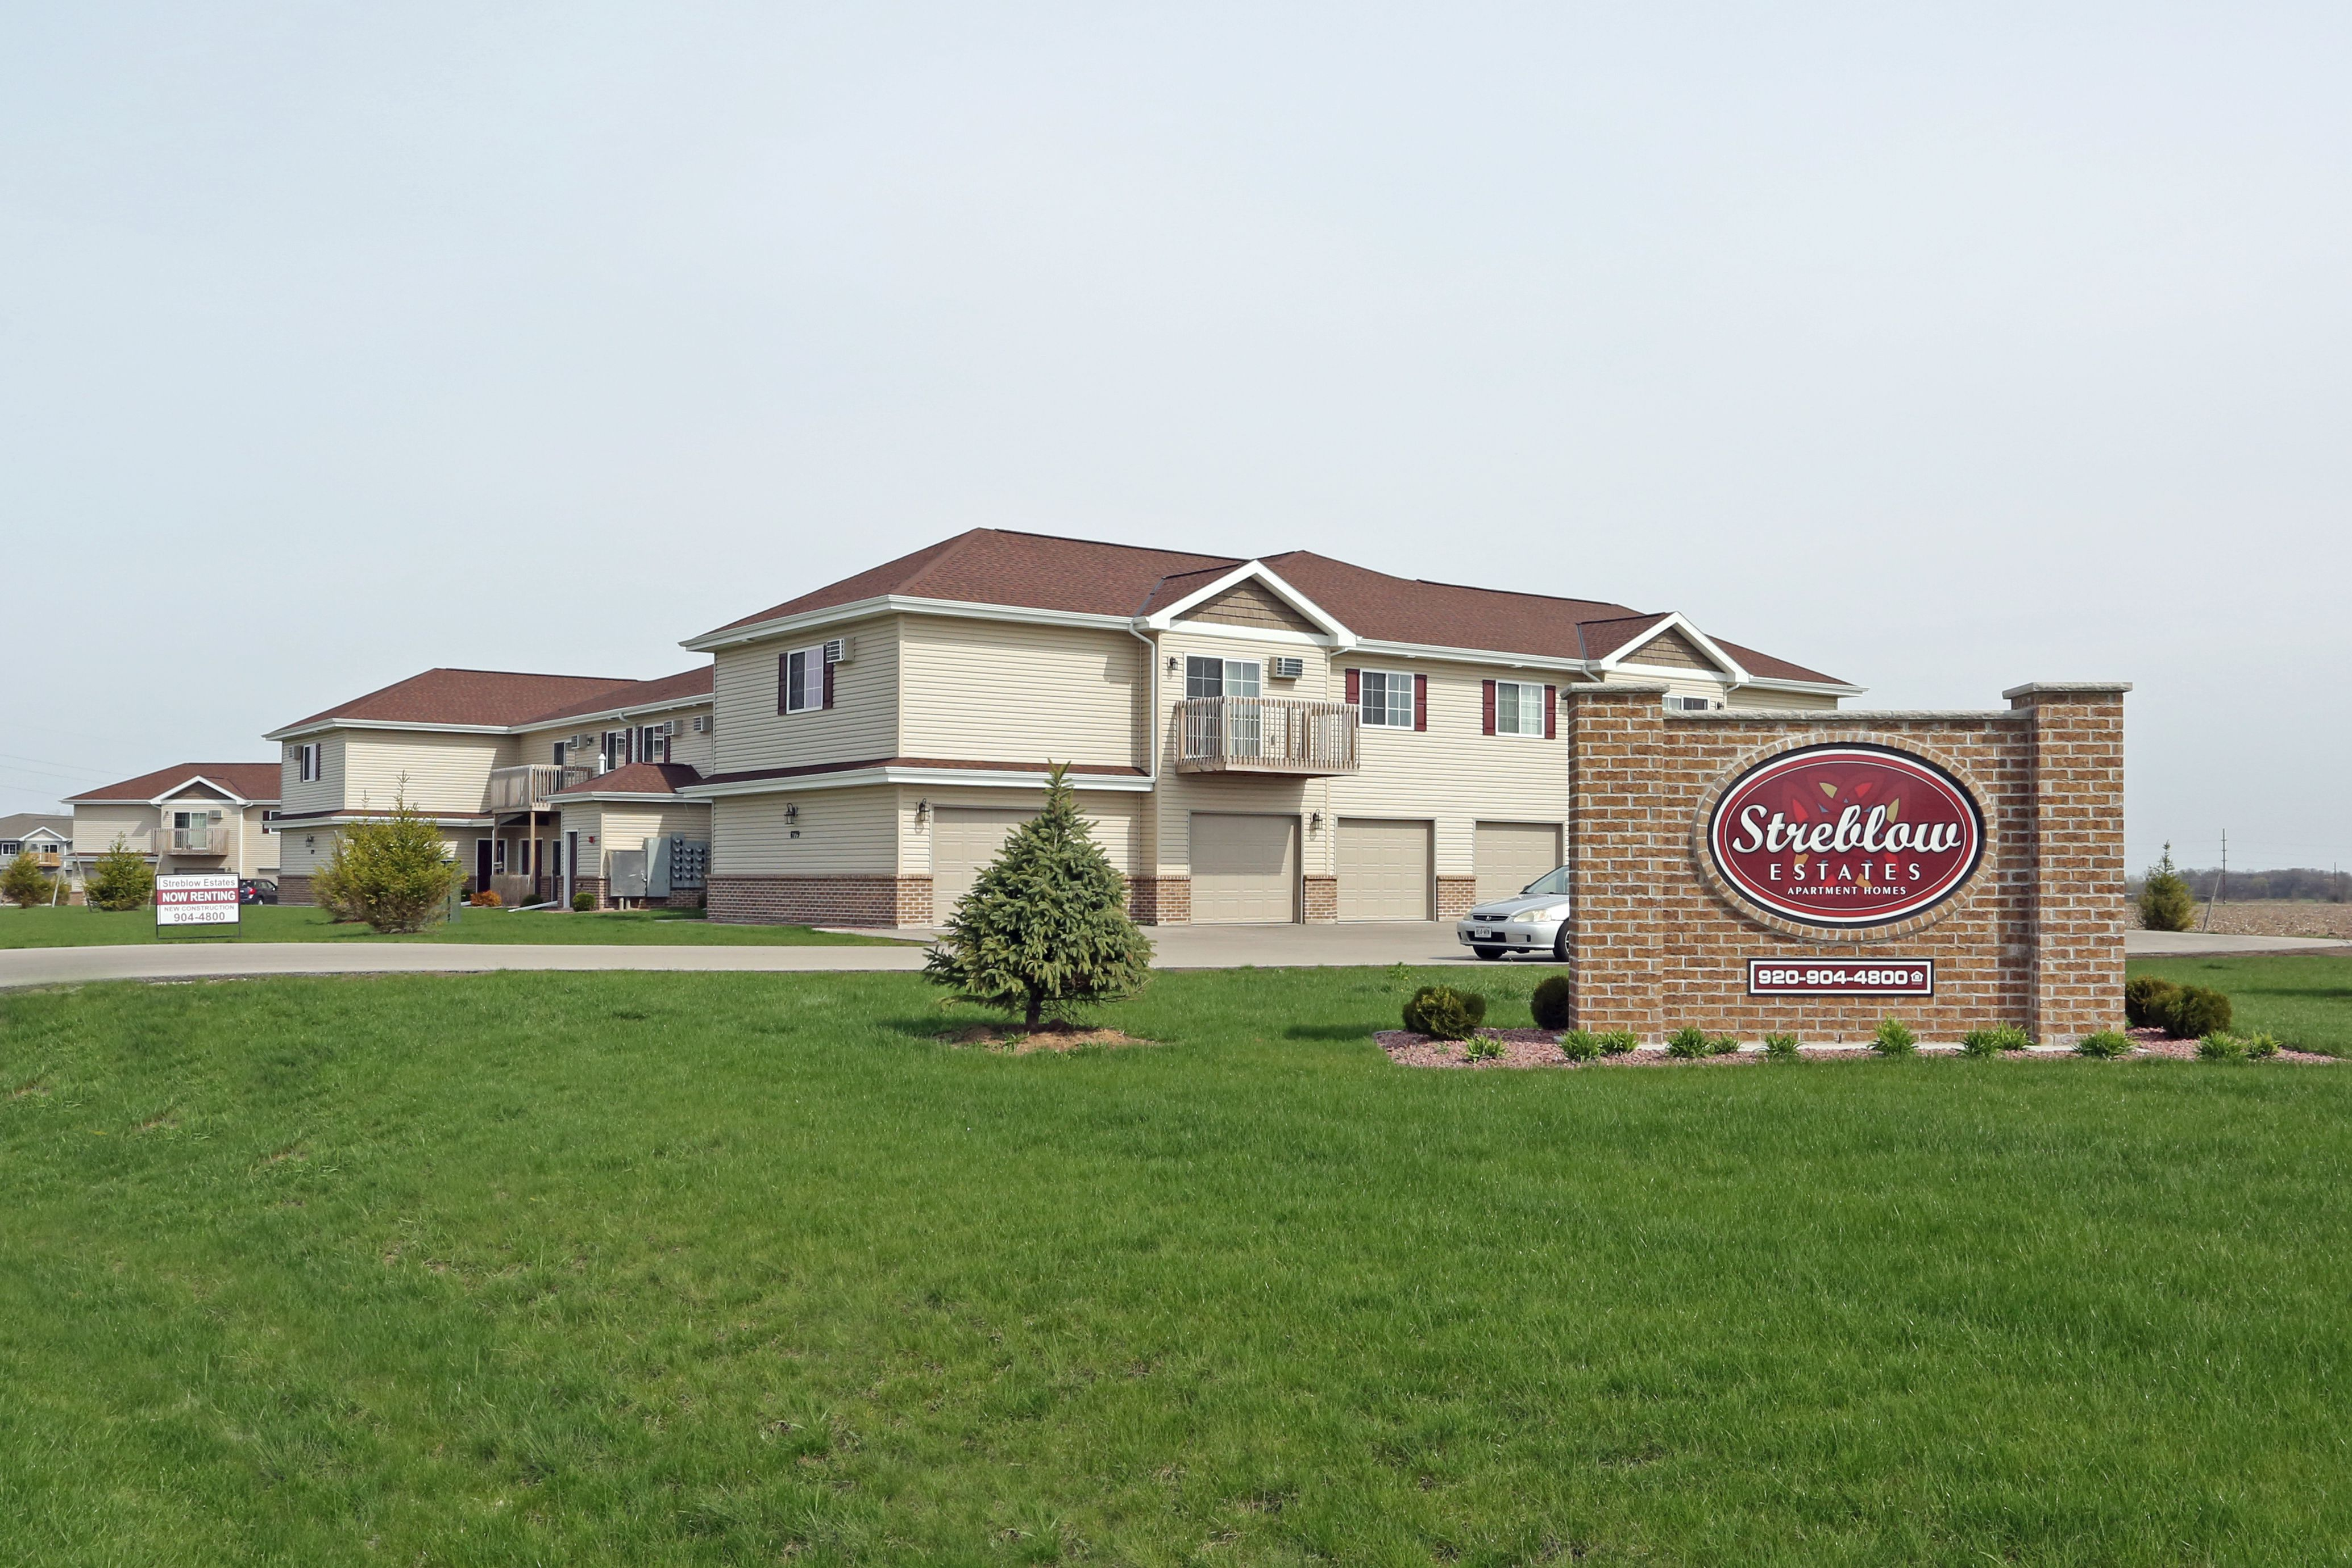 Apartments Near Marian Streblow Estate for Marian University Students in Fond du Lac, WI